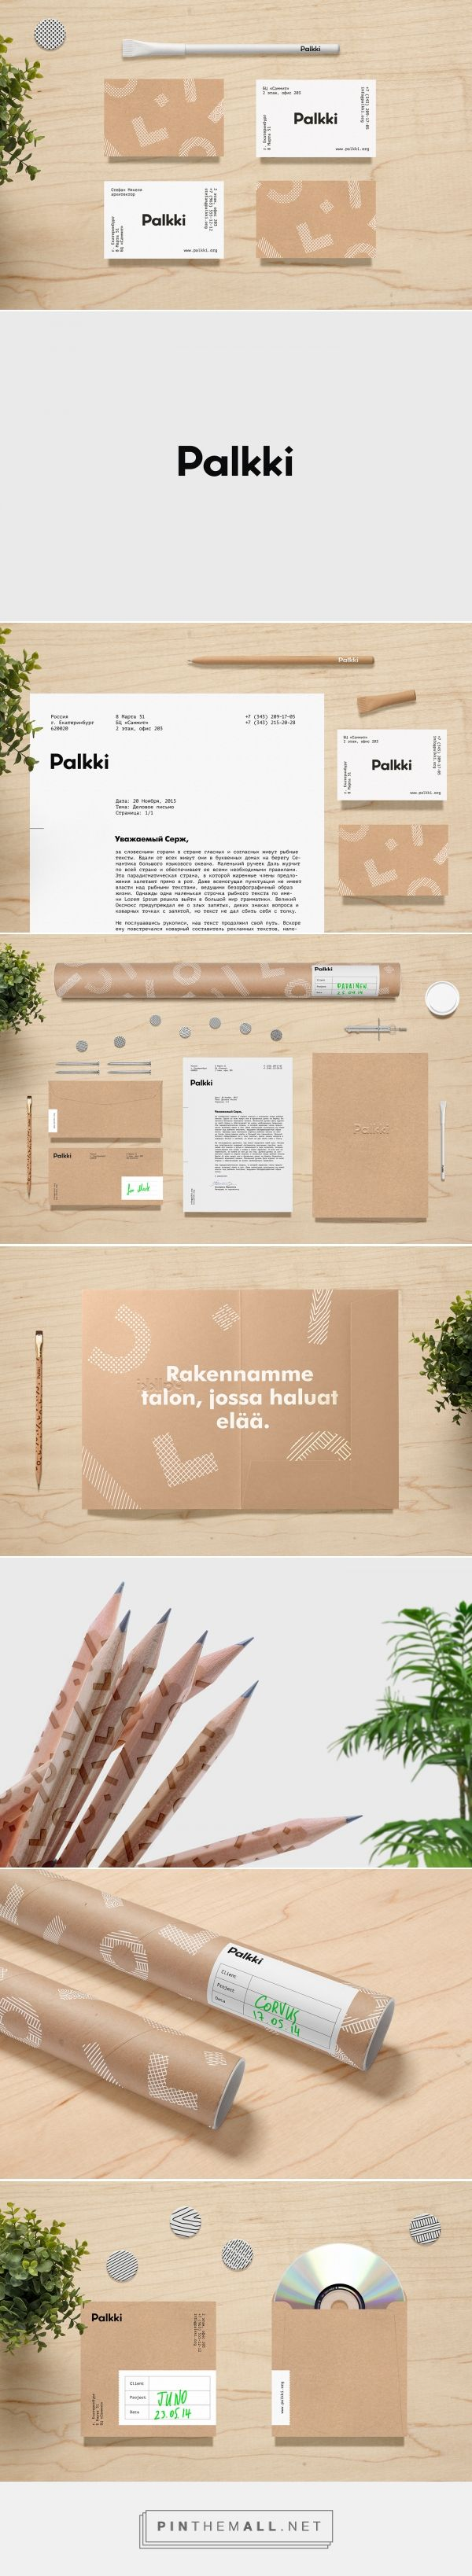 Branding, graphic design and packaging for Palkki on Behance curated by Packaging Diva PD. Architectural marketing branding and natural, recyclable materials emphasize a high level of environmental friendliness and care about the world around.